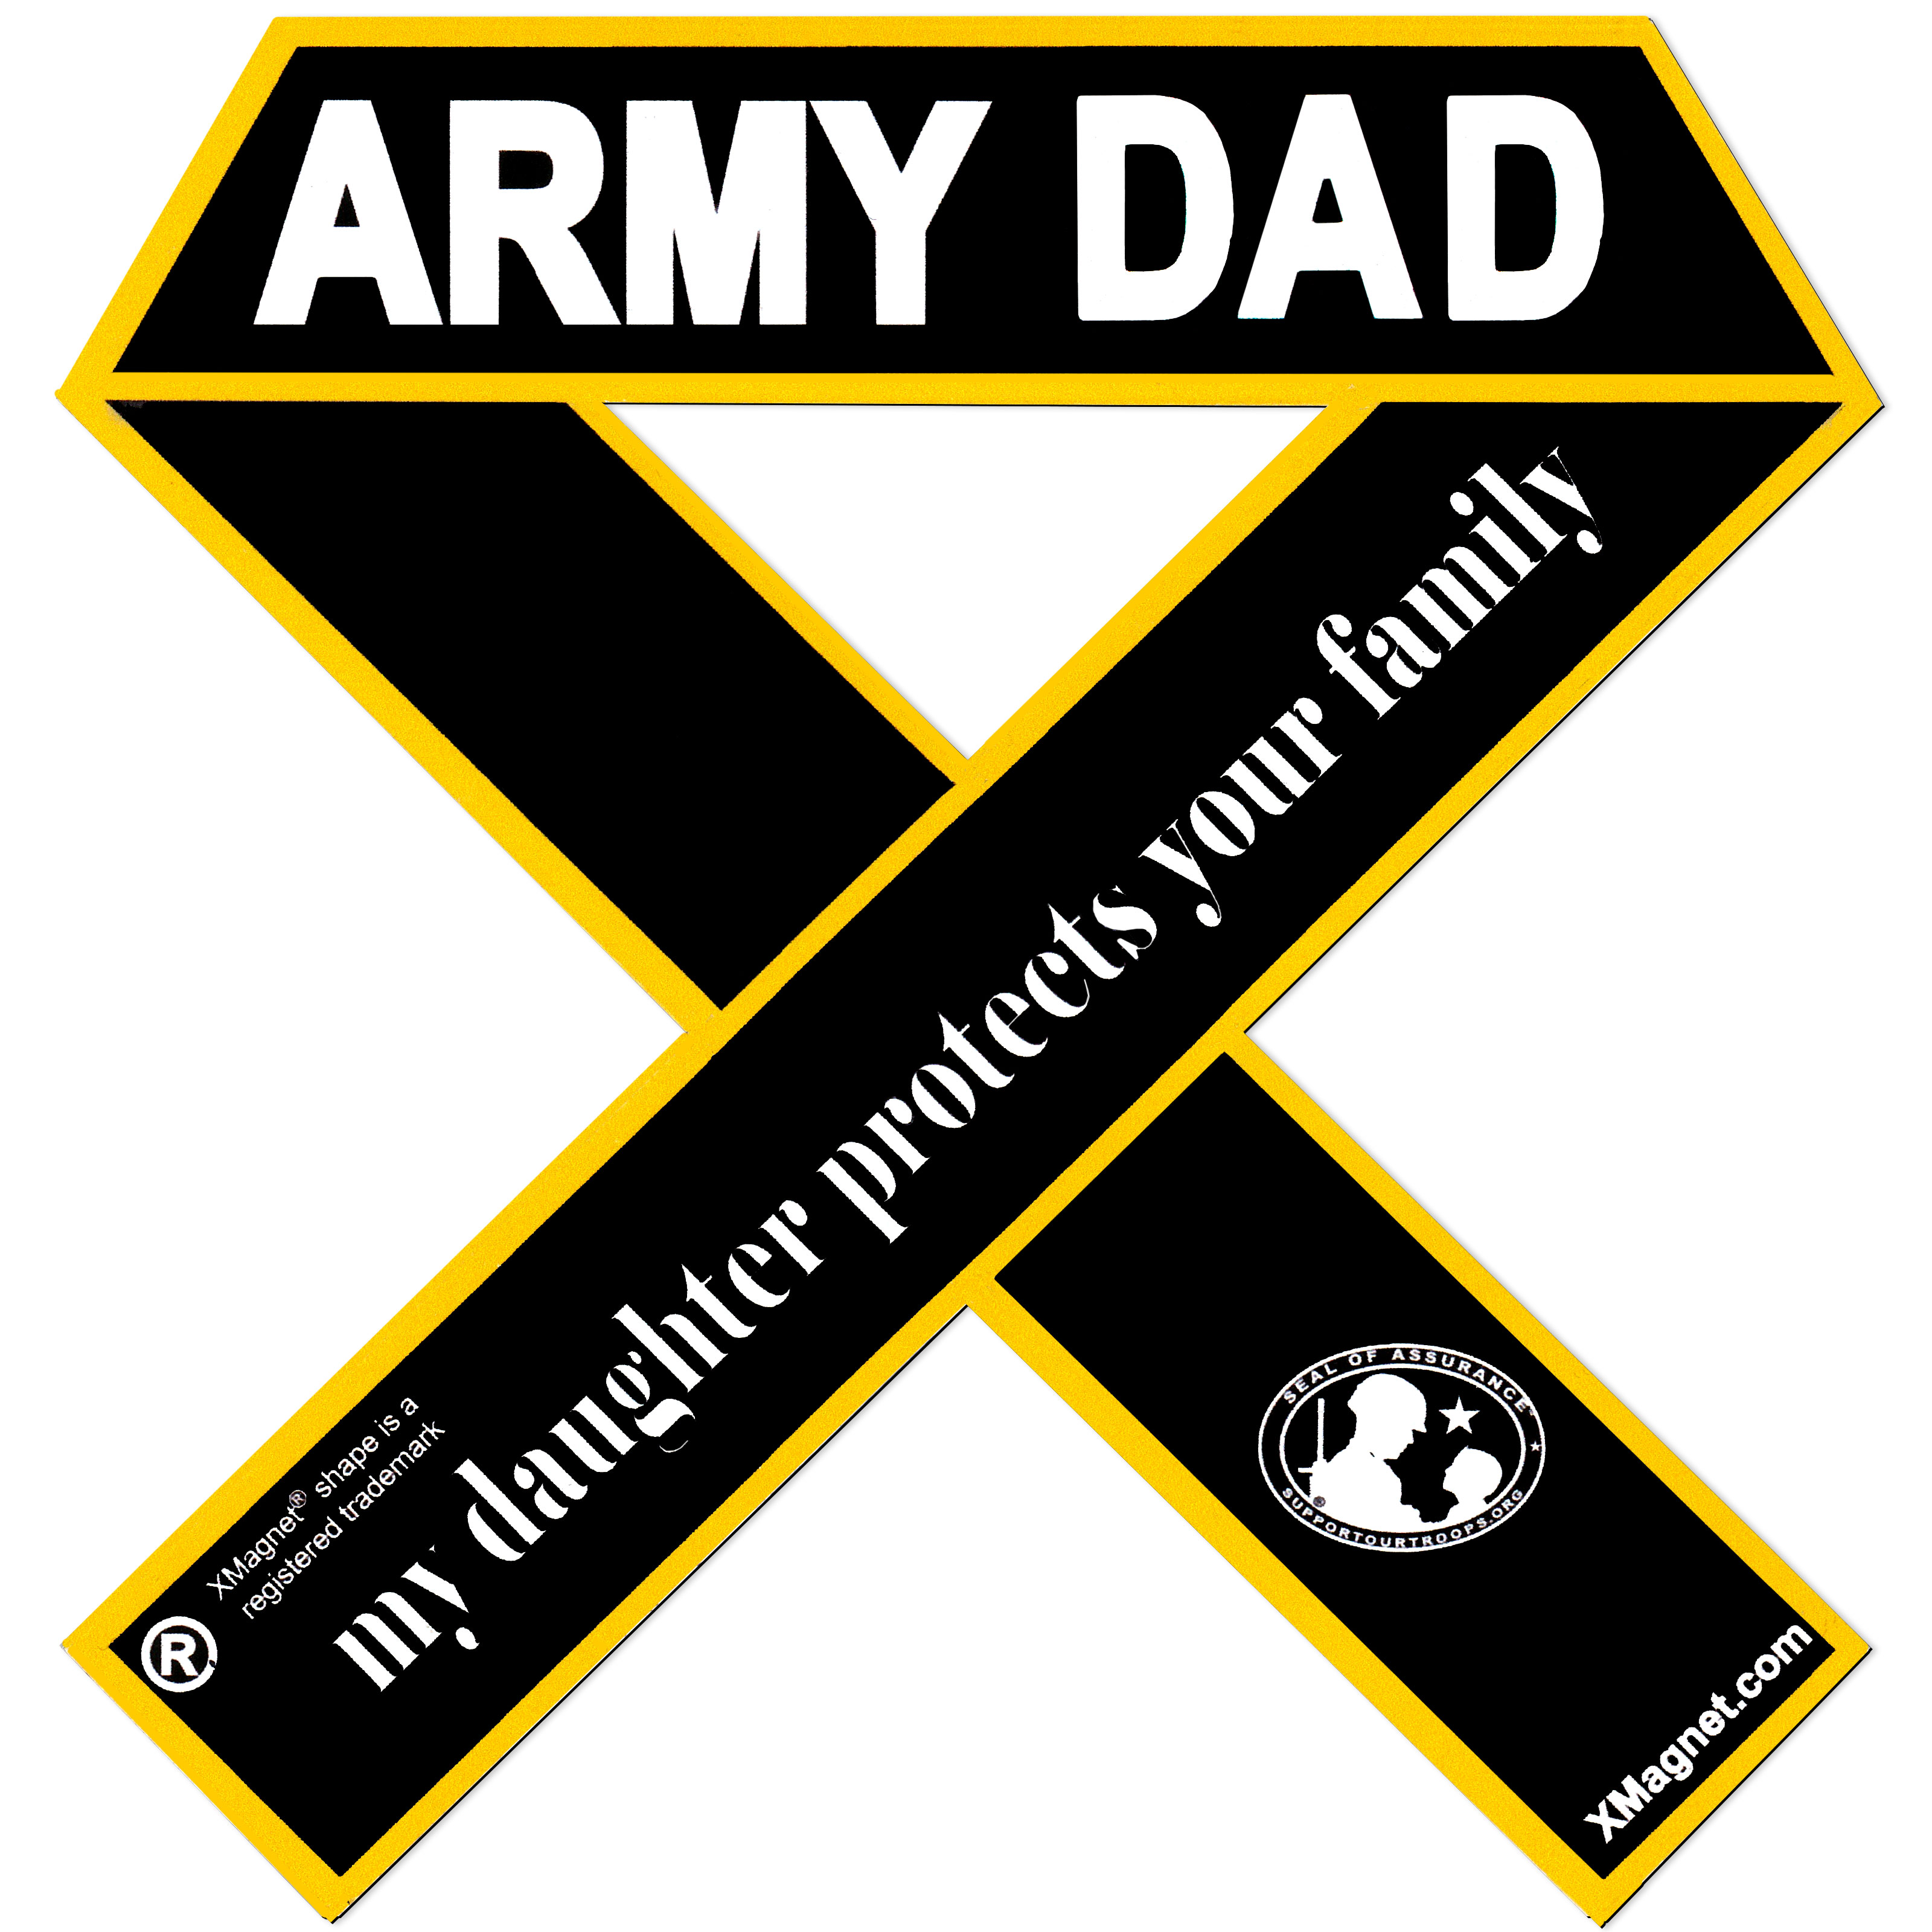 My Daughter Protects Your Family Xmagnet Vehicle Ribbon Car Magnet Decal SUPPORT OUR TROOPS Army Dad